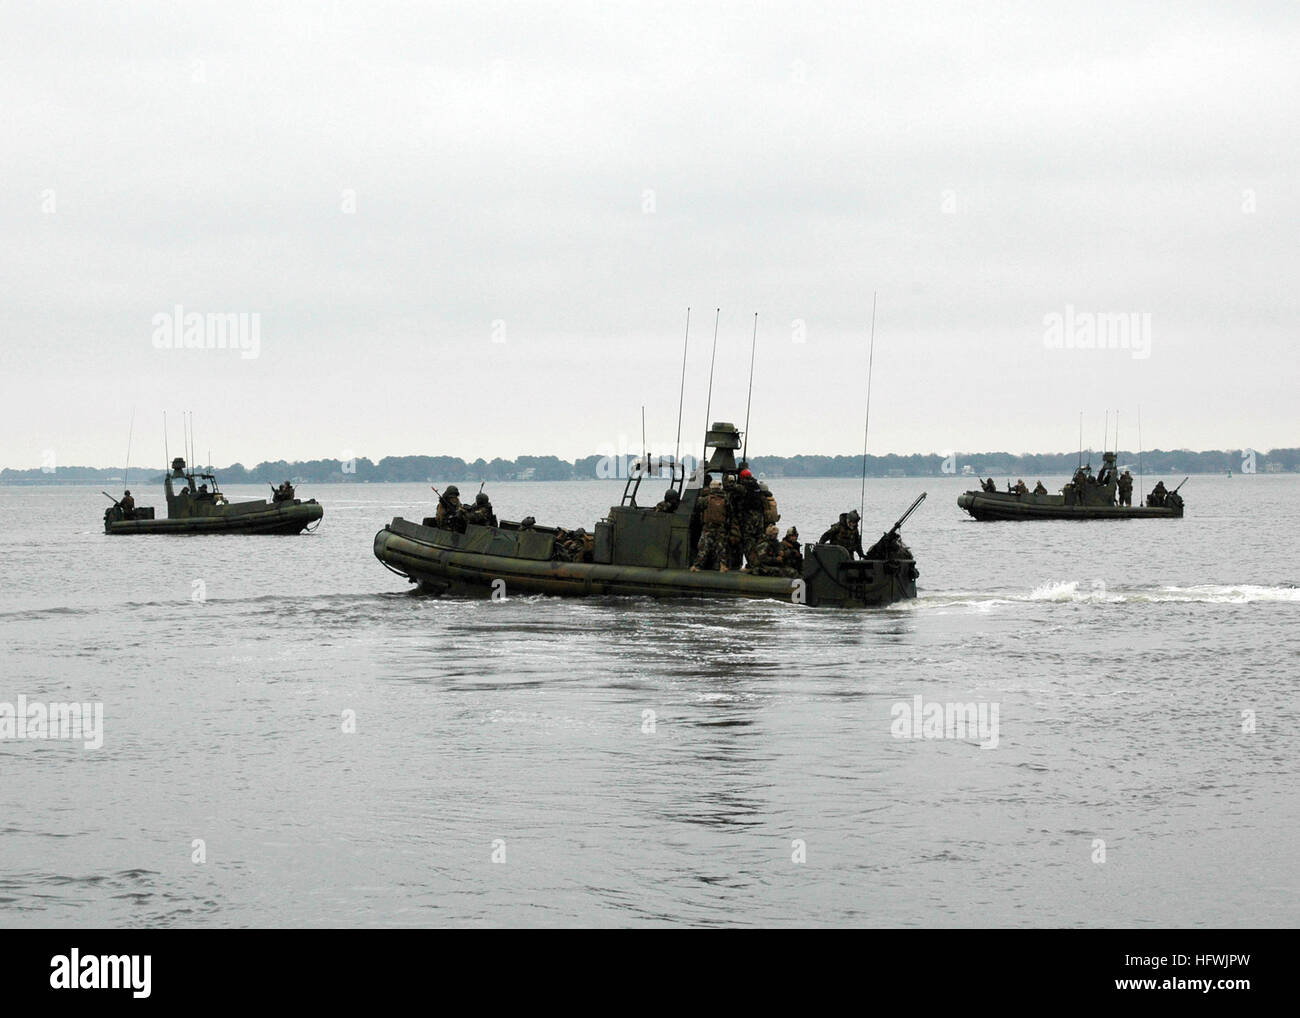 081217-N-3346C-142 NORFOLK, Va. (Dec. 17, 2008) Sailors assigned to Riverine Squadron (RIVRON) 2 conduct waterborne - Stock Image